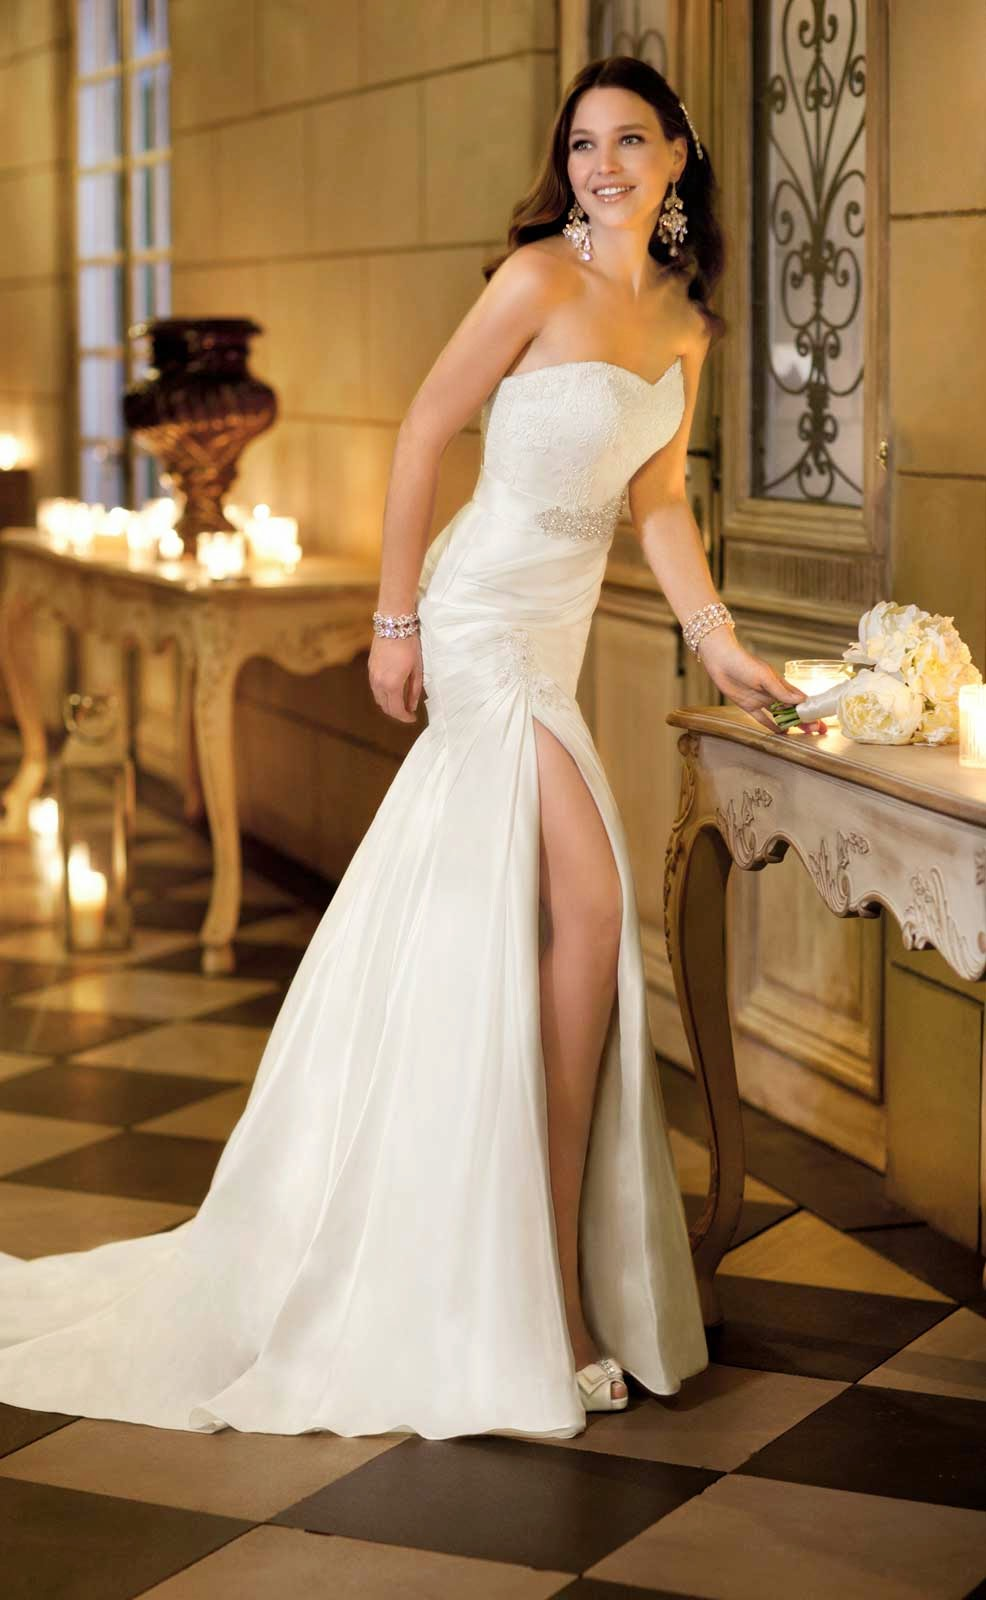 Simple White Wedding Dresses Concepts Ideas Photos HD